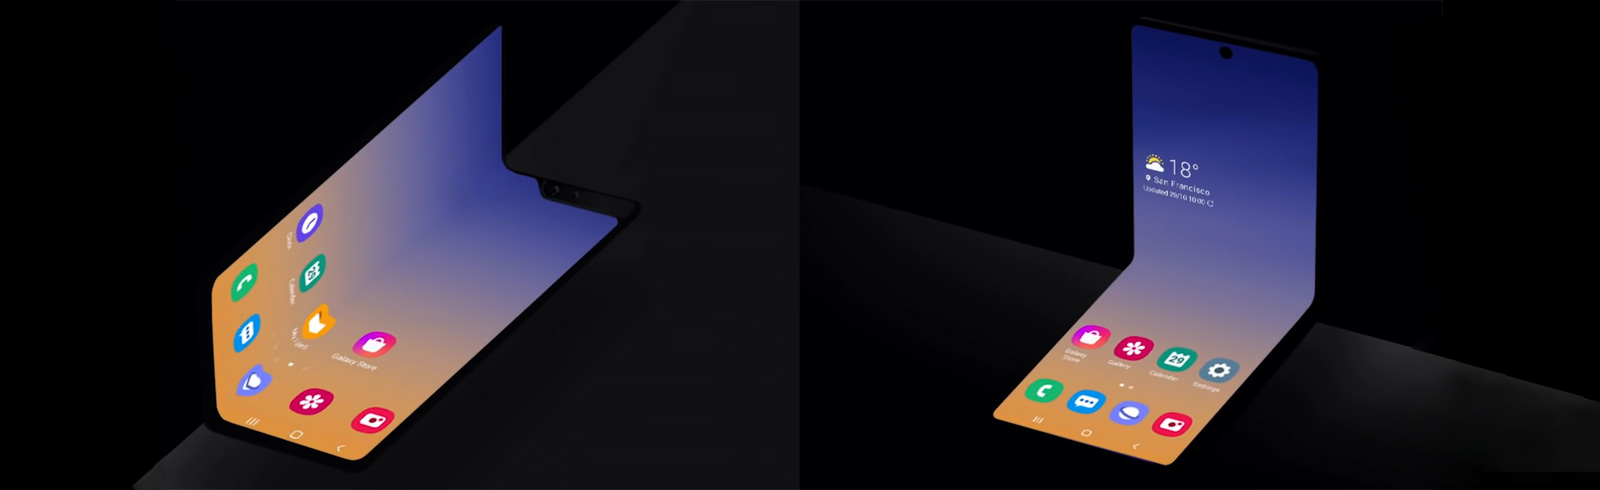 The Samsung Galaxy Fold 2 will purportedly be sold the Galaxy Z Flip